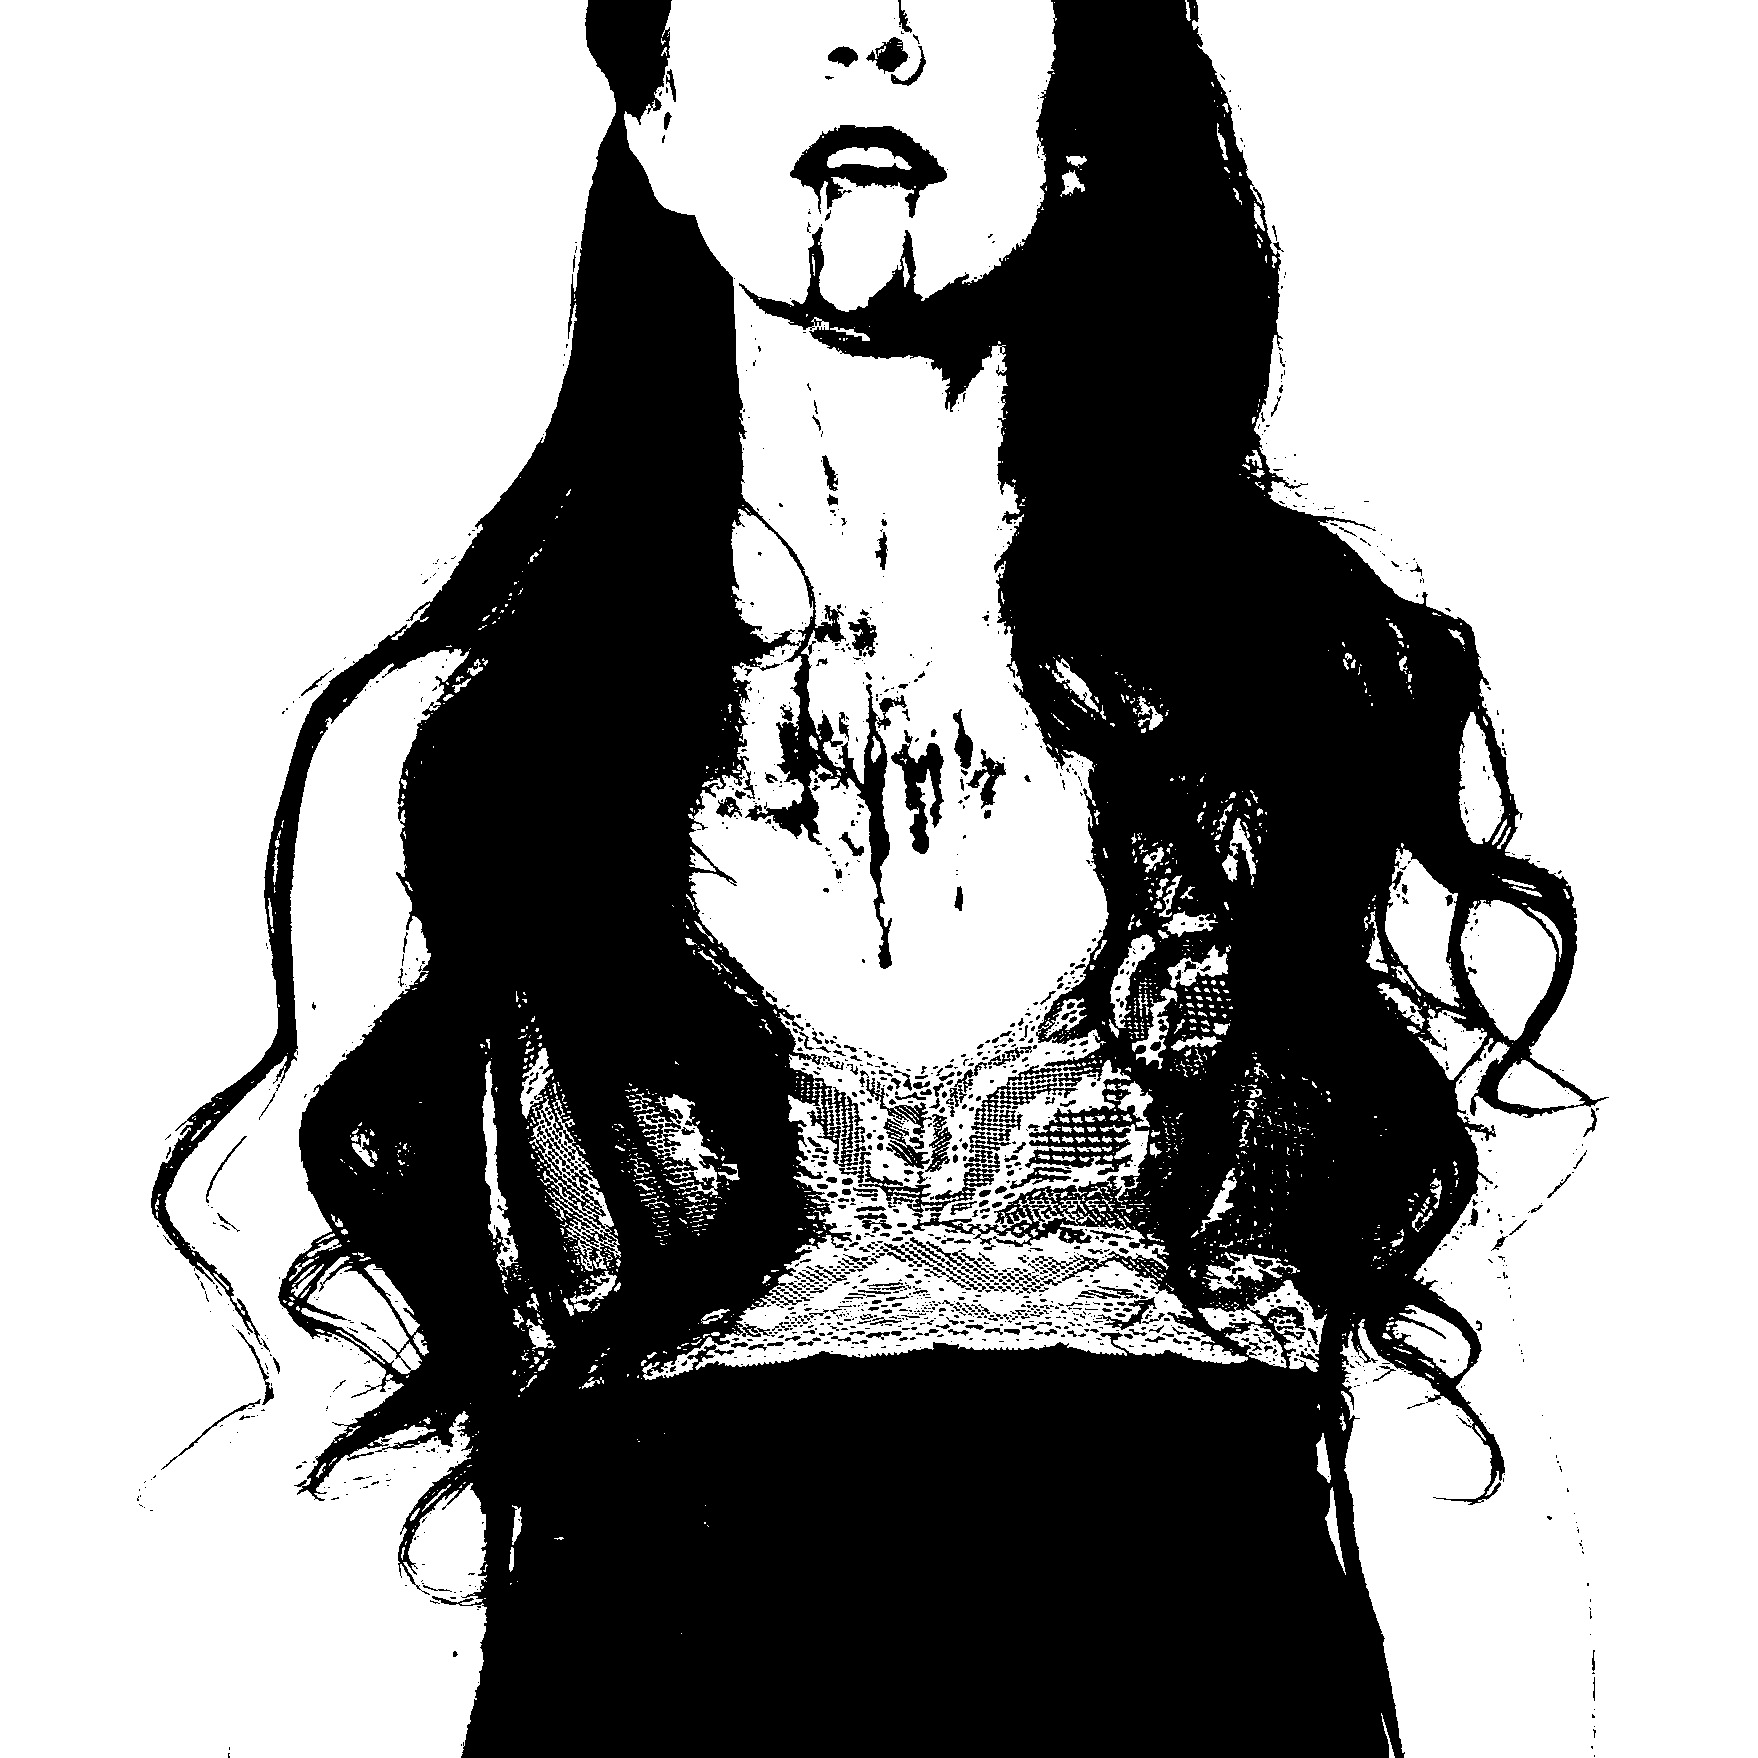 Sleepless Orchid is a Victorian and Art Nouveau art with Southern Gothic portrait in dark monochrome or black and white fantasy vampire in year 2020